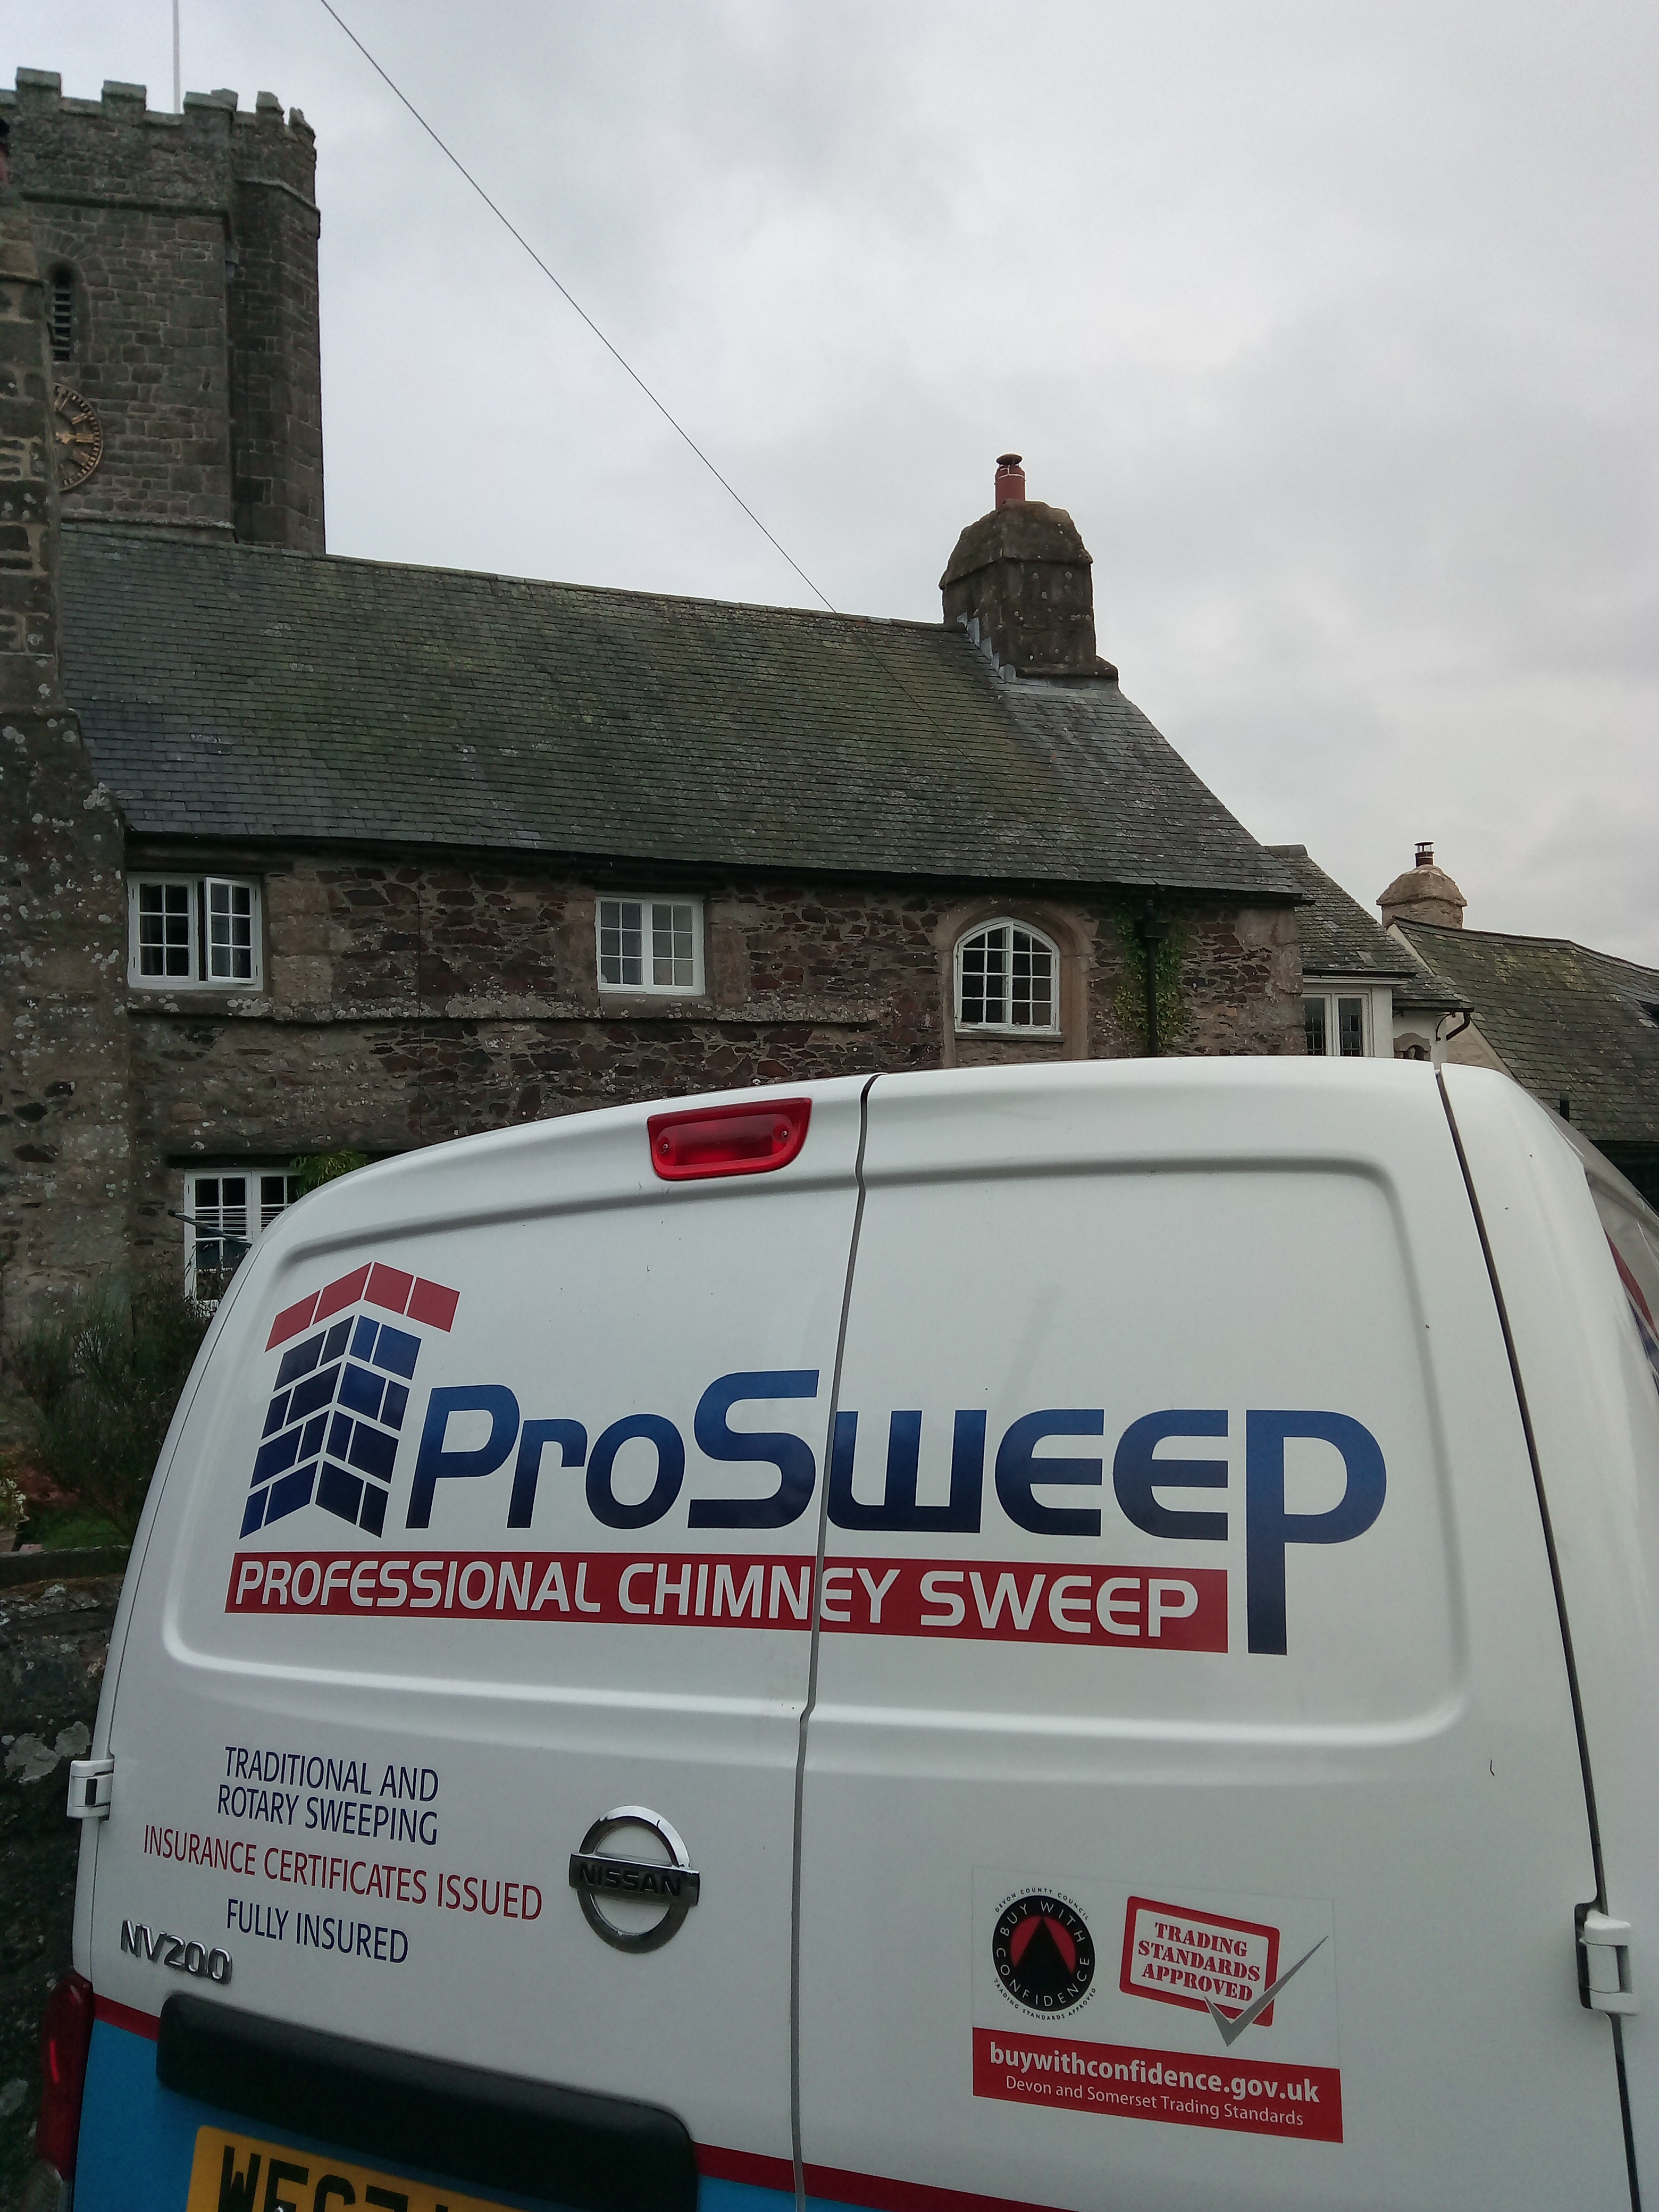 ProSweep Your reliable chimney sweep in ashburton